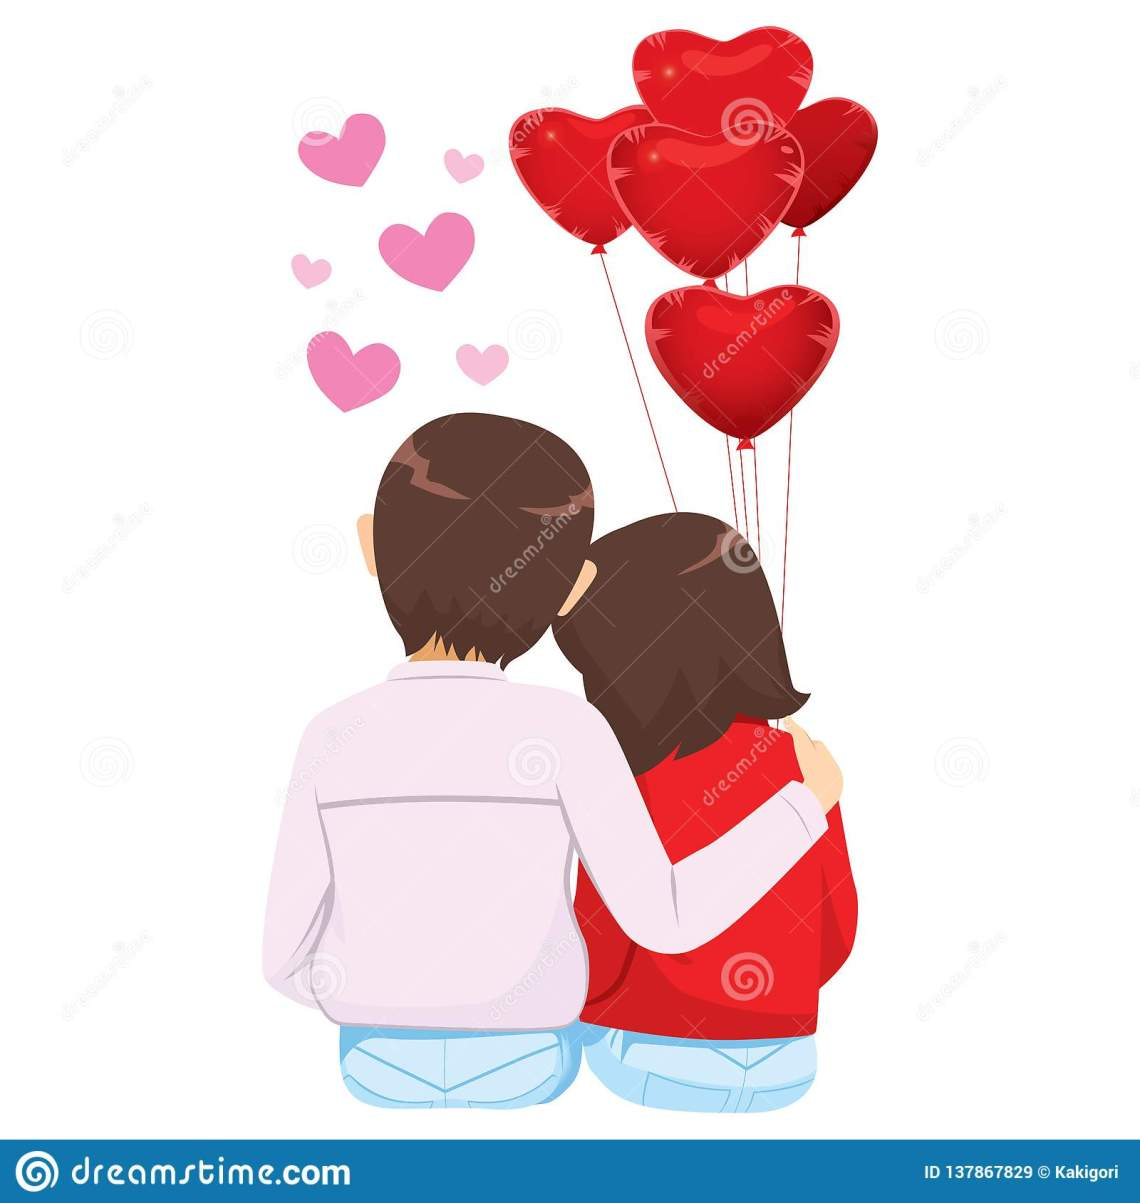 Download Lover Couple Red Heart Balloons Stock Vector ...